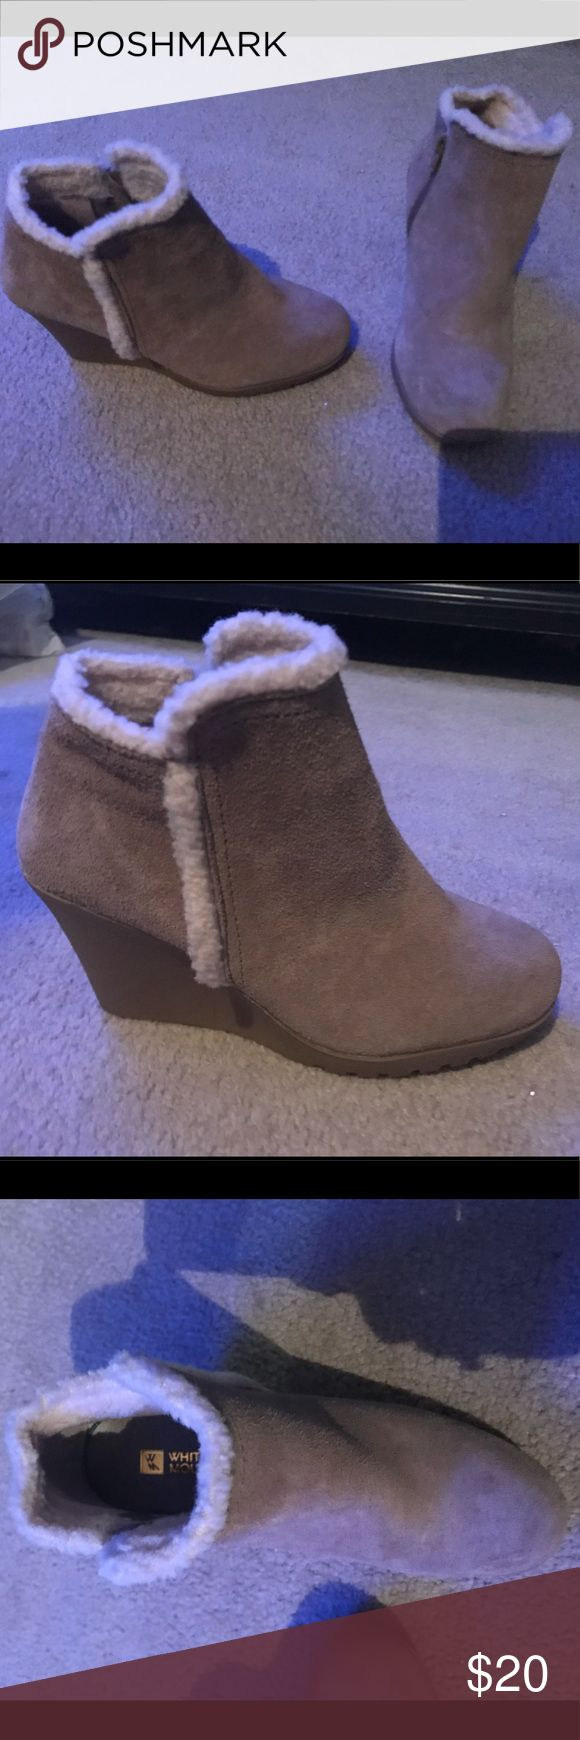 new White Mountain Boots Size 6 New tan & white, White Mountain Boots.  Size 6. White Mountain Shoes Ankle Boots & Booties